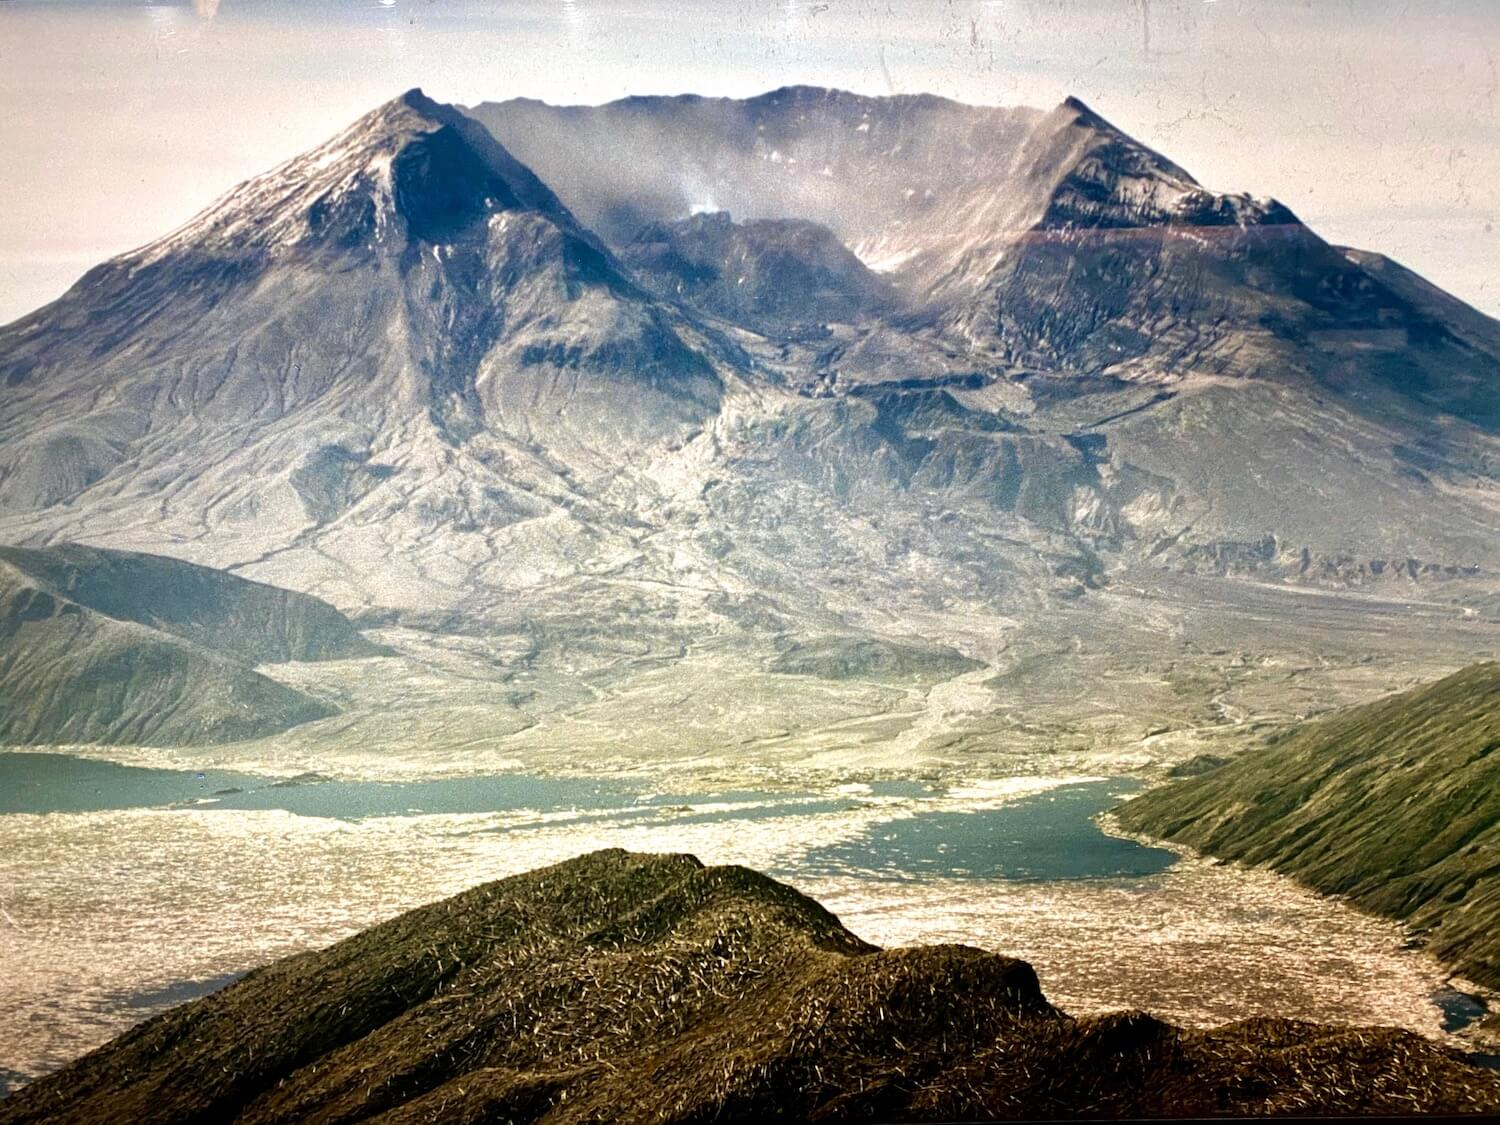 A photo from an exhibit at the Mt. St. Helens Visitor Center showing the aftermath of the massive landslide and steam explosion that occurred on May 18, 1980.  The smoldering crater is releasing steam around a charred black mountain that leads down a dusty landscape to Spirit Lake, now almost filled with floating logs of the trees destroyed in the blast.